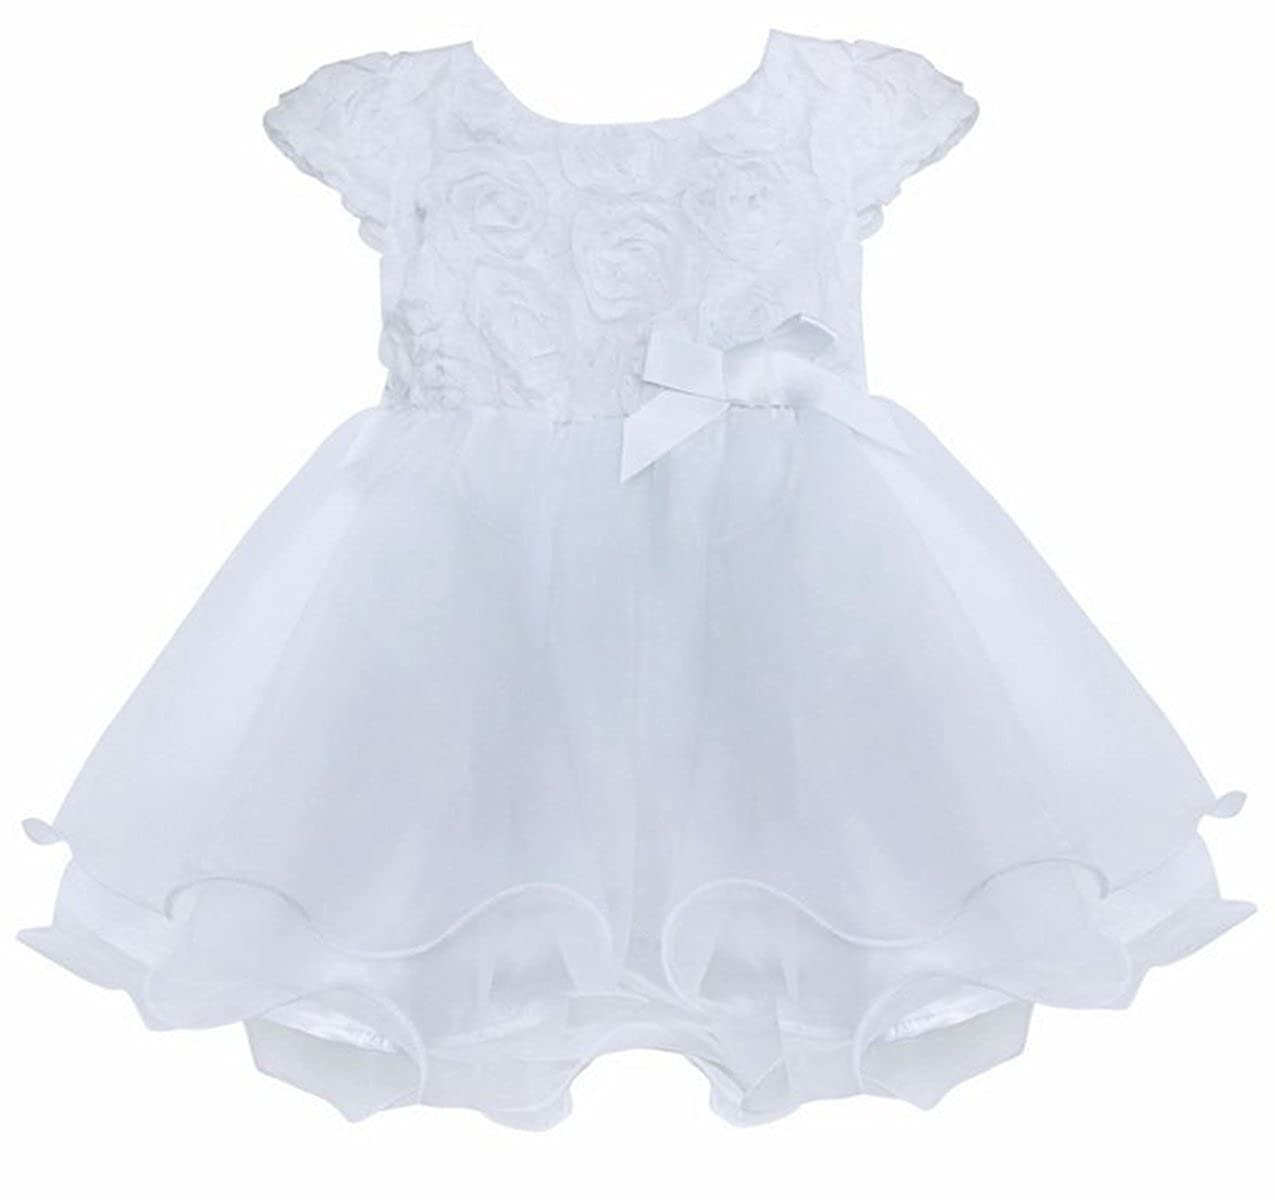 iEFiEL Baby Girls' Short Sleeve 3D Rose Layered Princess Tutu Dresses Wedding Birthday Party Christening Gowns